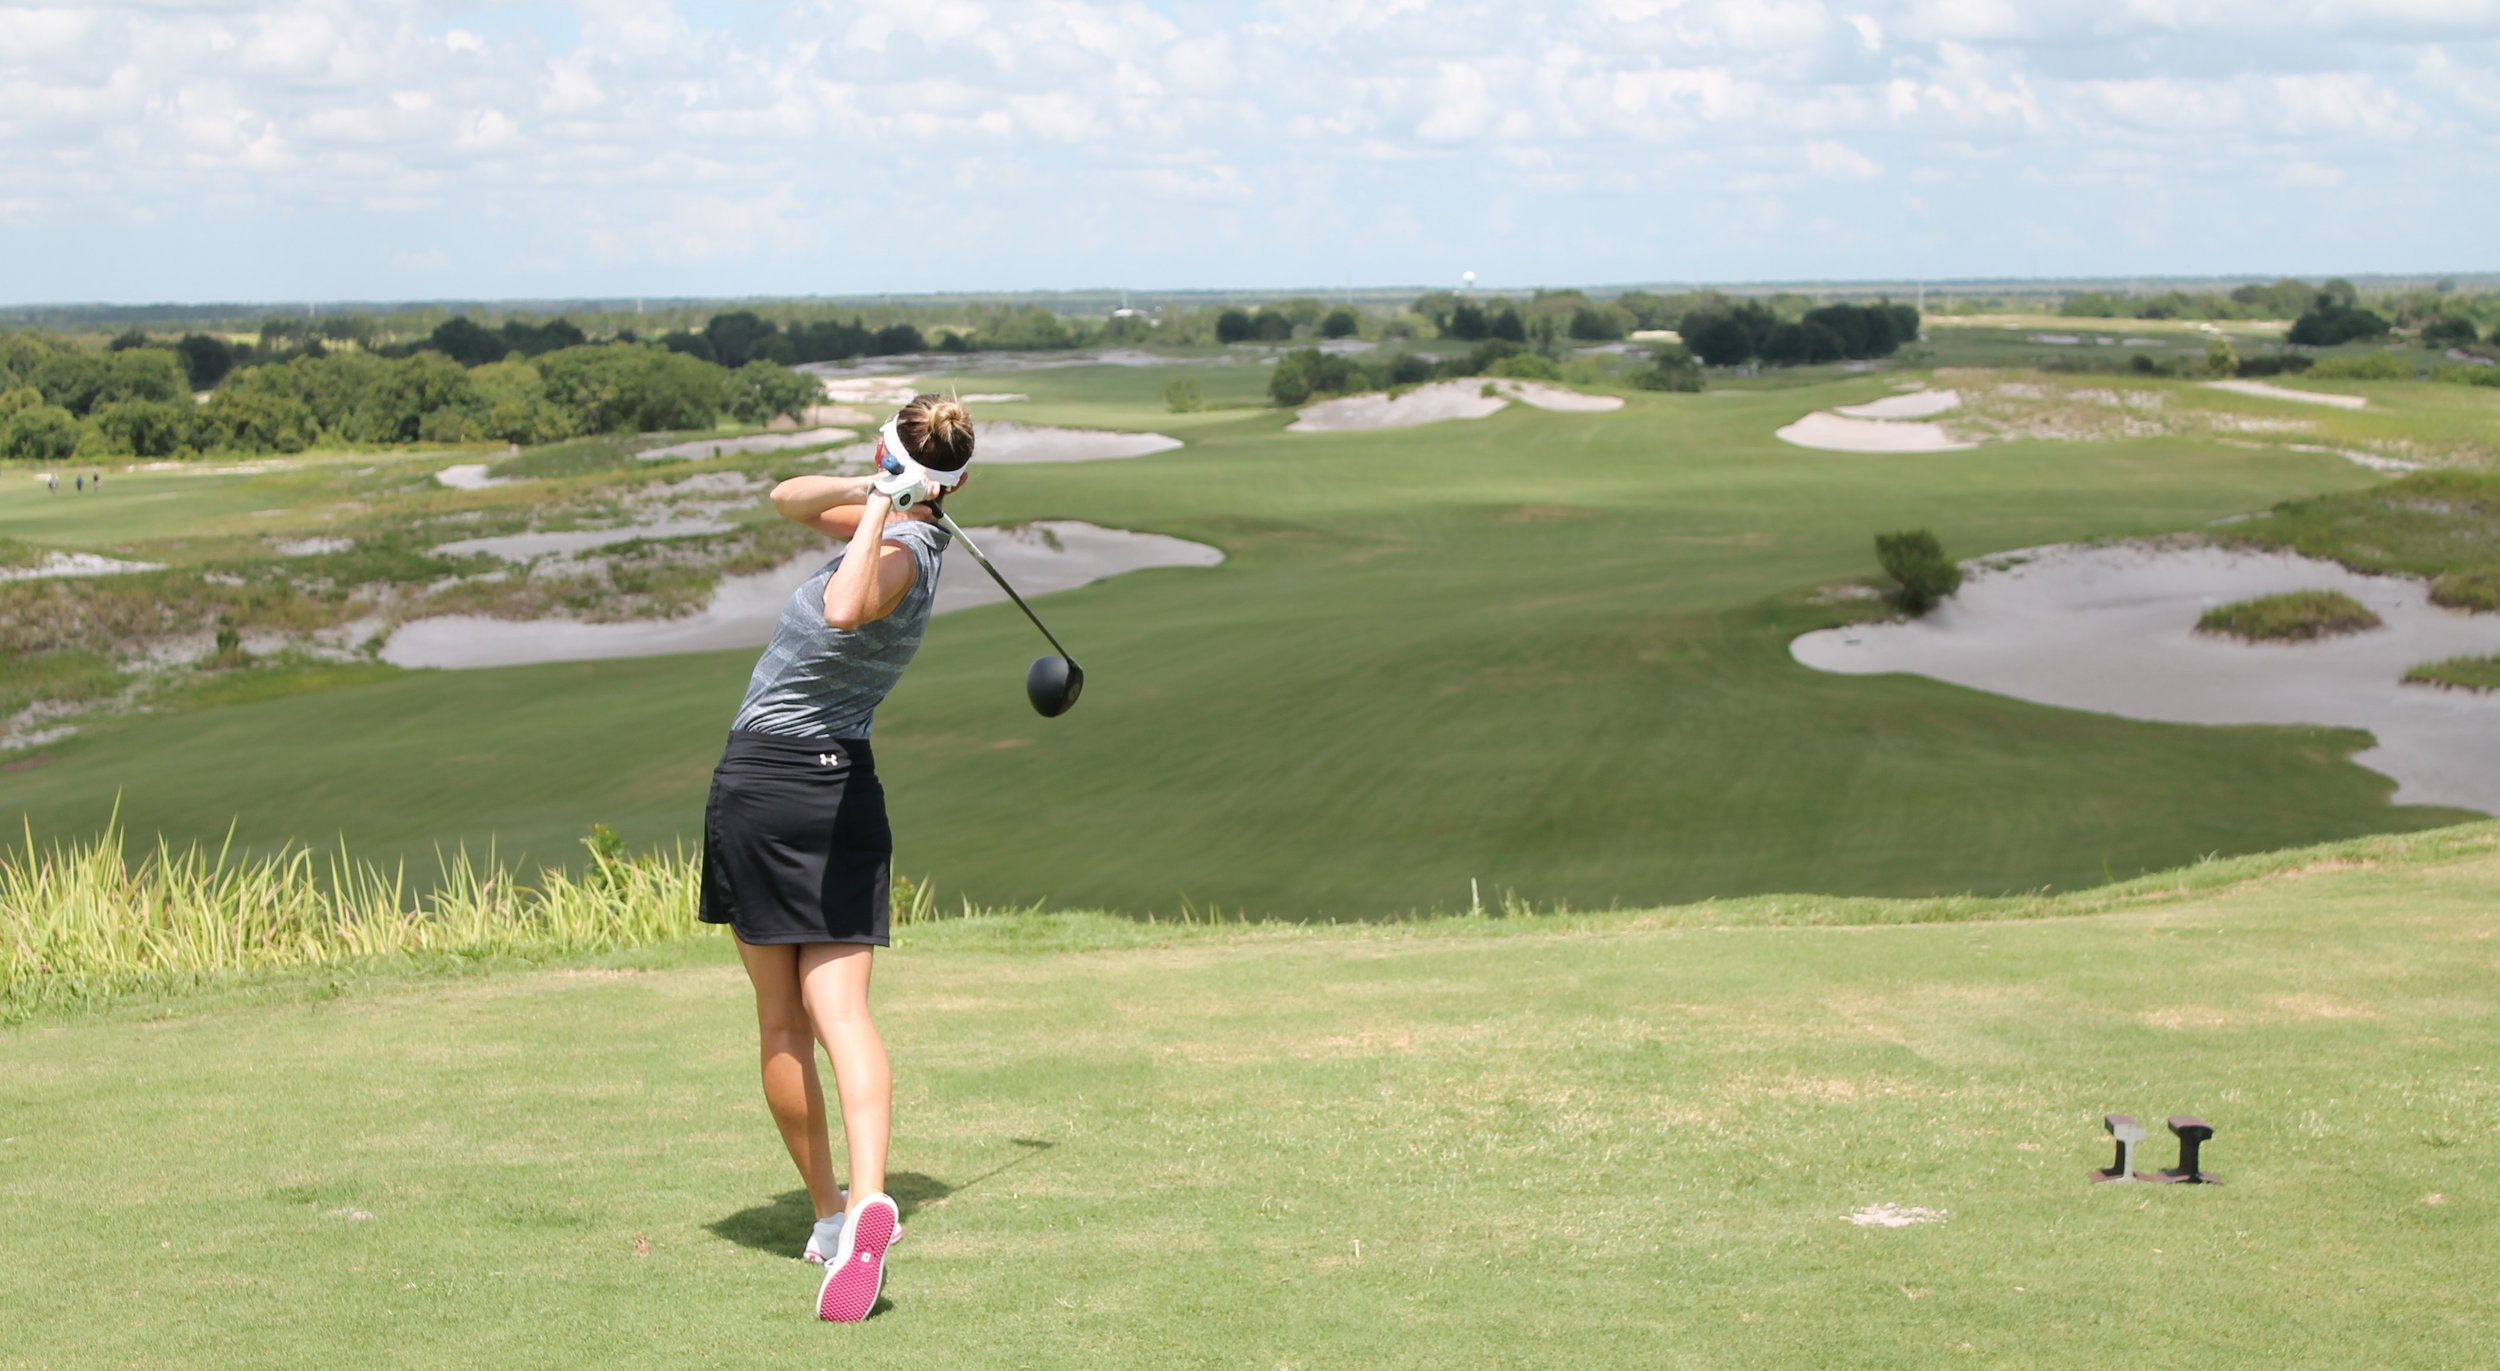 Of the 17 rounds I played in 2017, the two at Streamsong Resort were the absolute best.